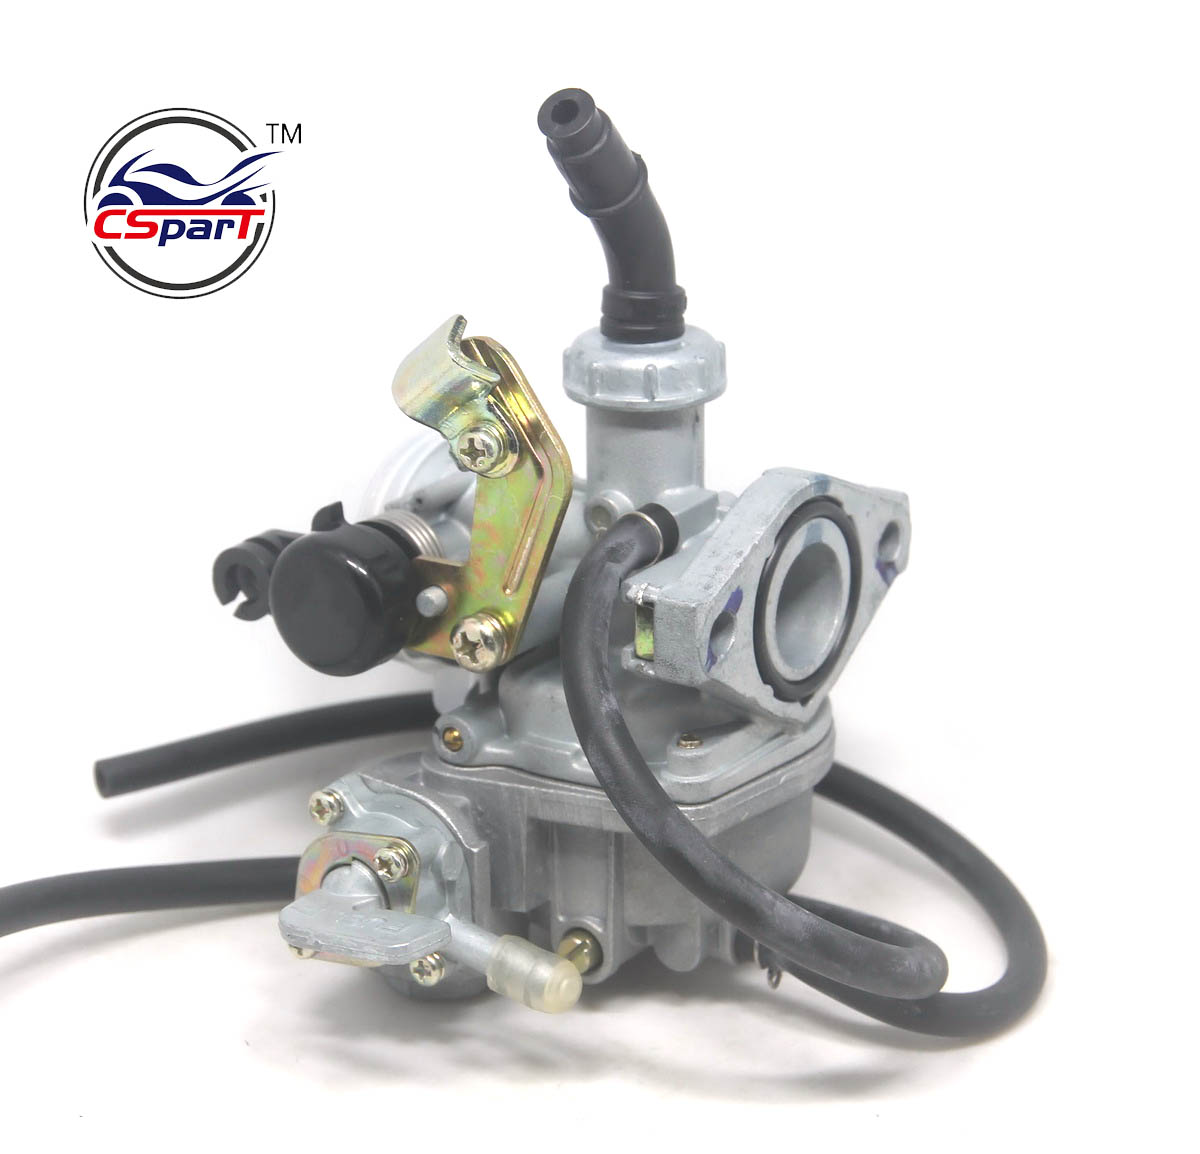 PZ19 mm Cable Choke Carburetor carb 90 110 125cc ATV Quad dirt bike TaoTao Sun